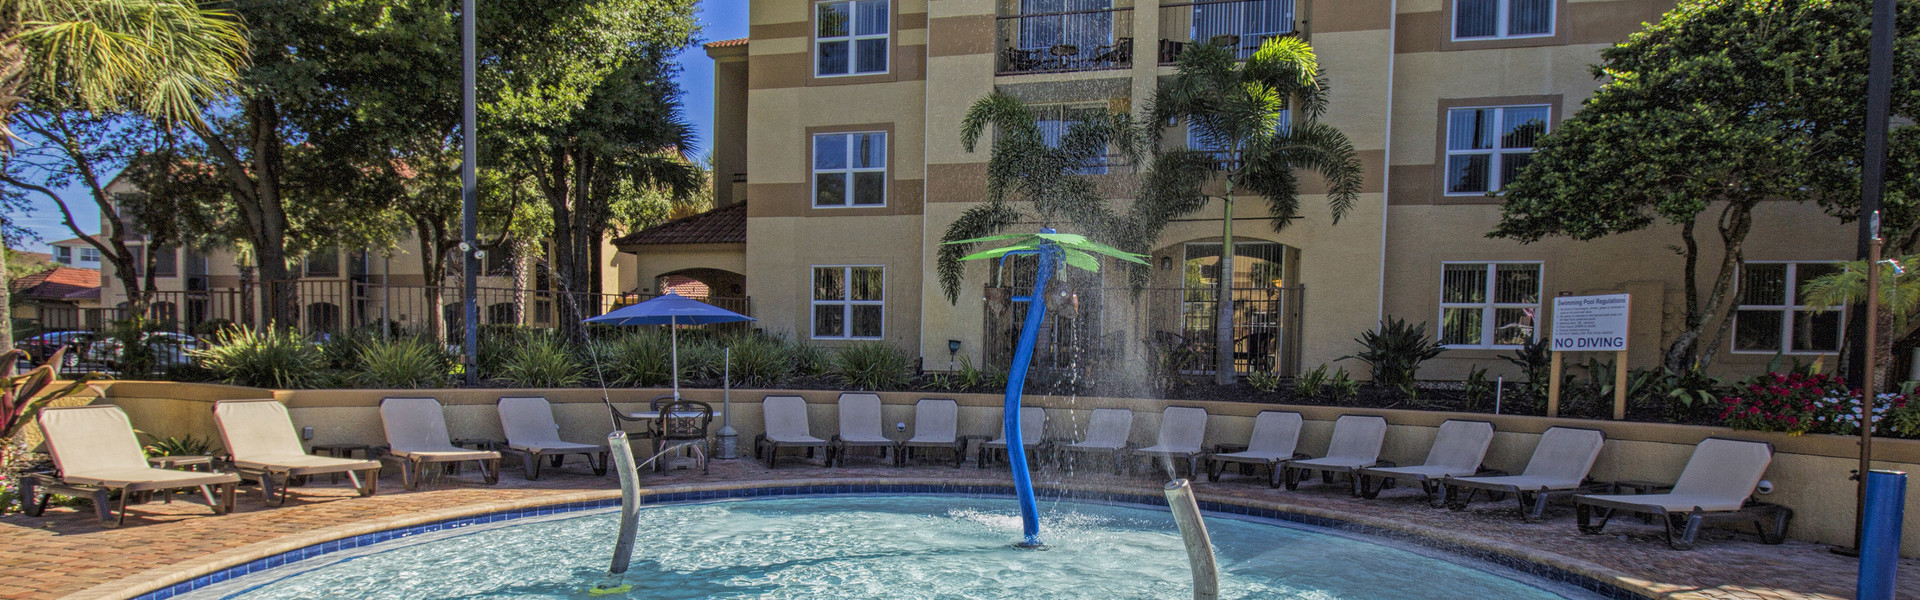 Entrance For Group Bookings & Family Reunions   Group Booking Rates at Westgate Blue Tree Resort   Meeting Space in Orlando Florida 32836